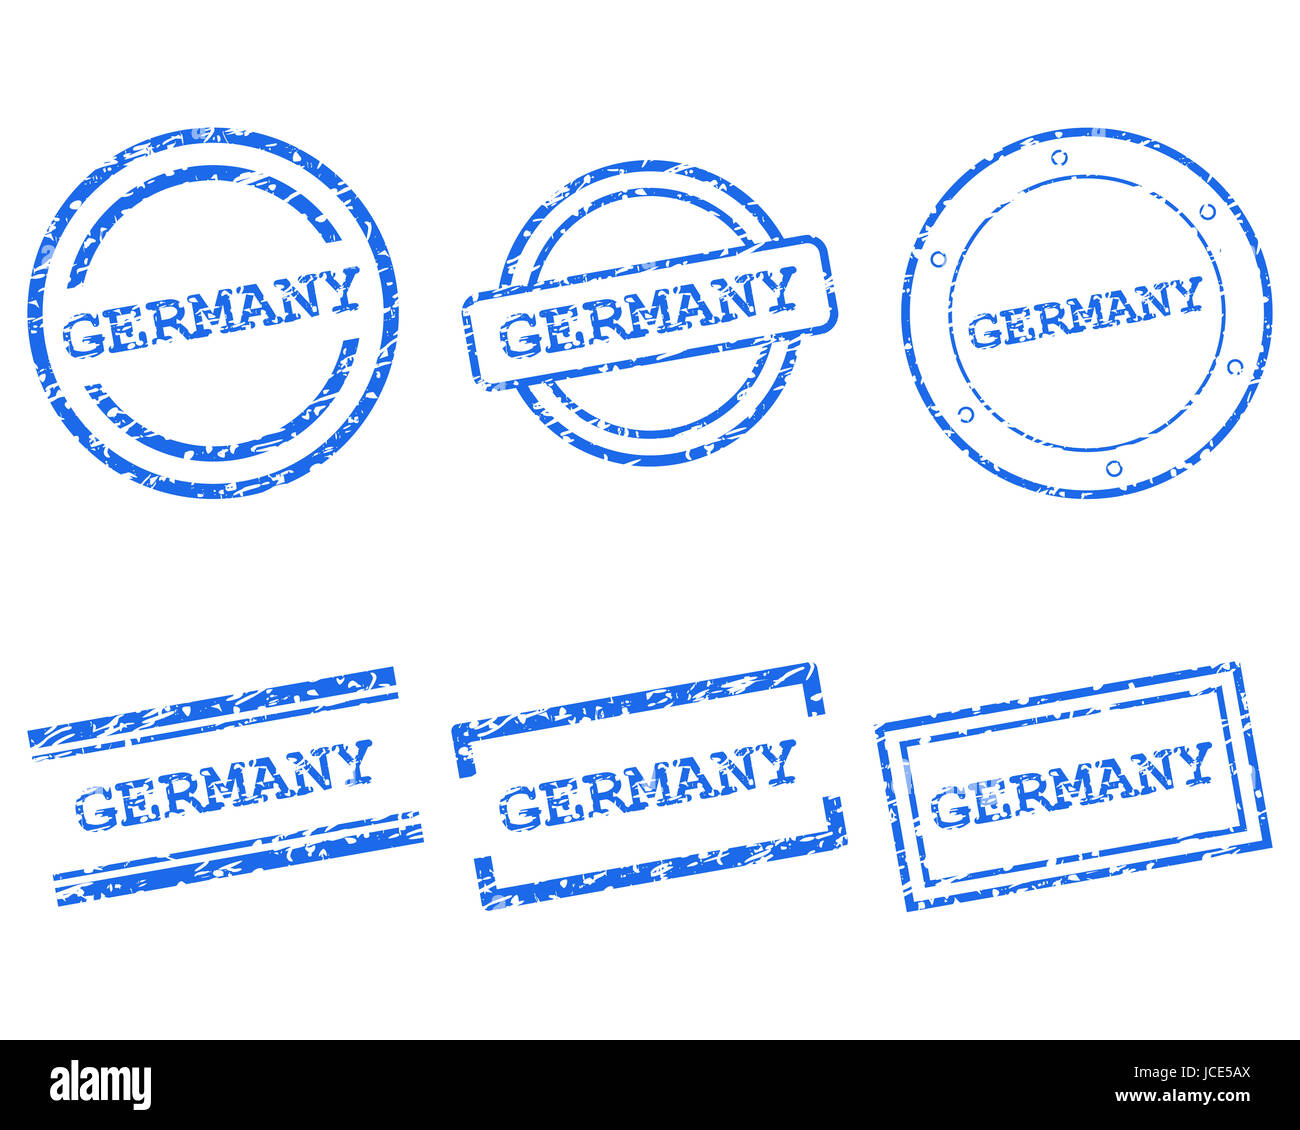 Germany Stempel - Stock Image